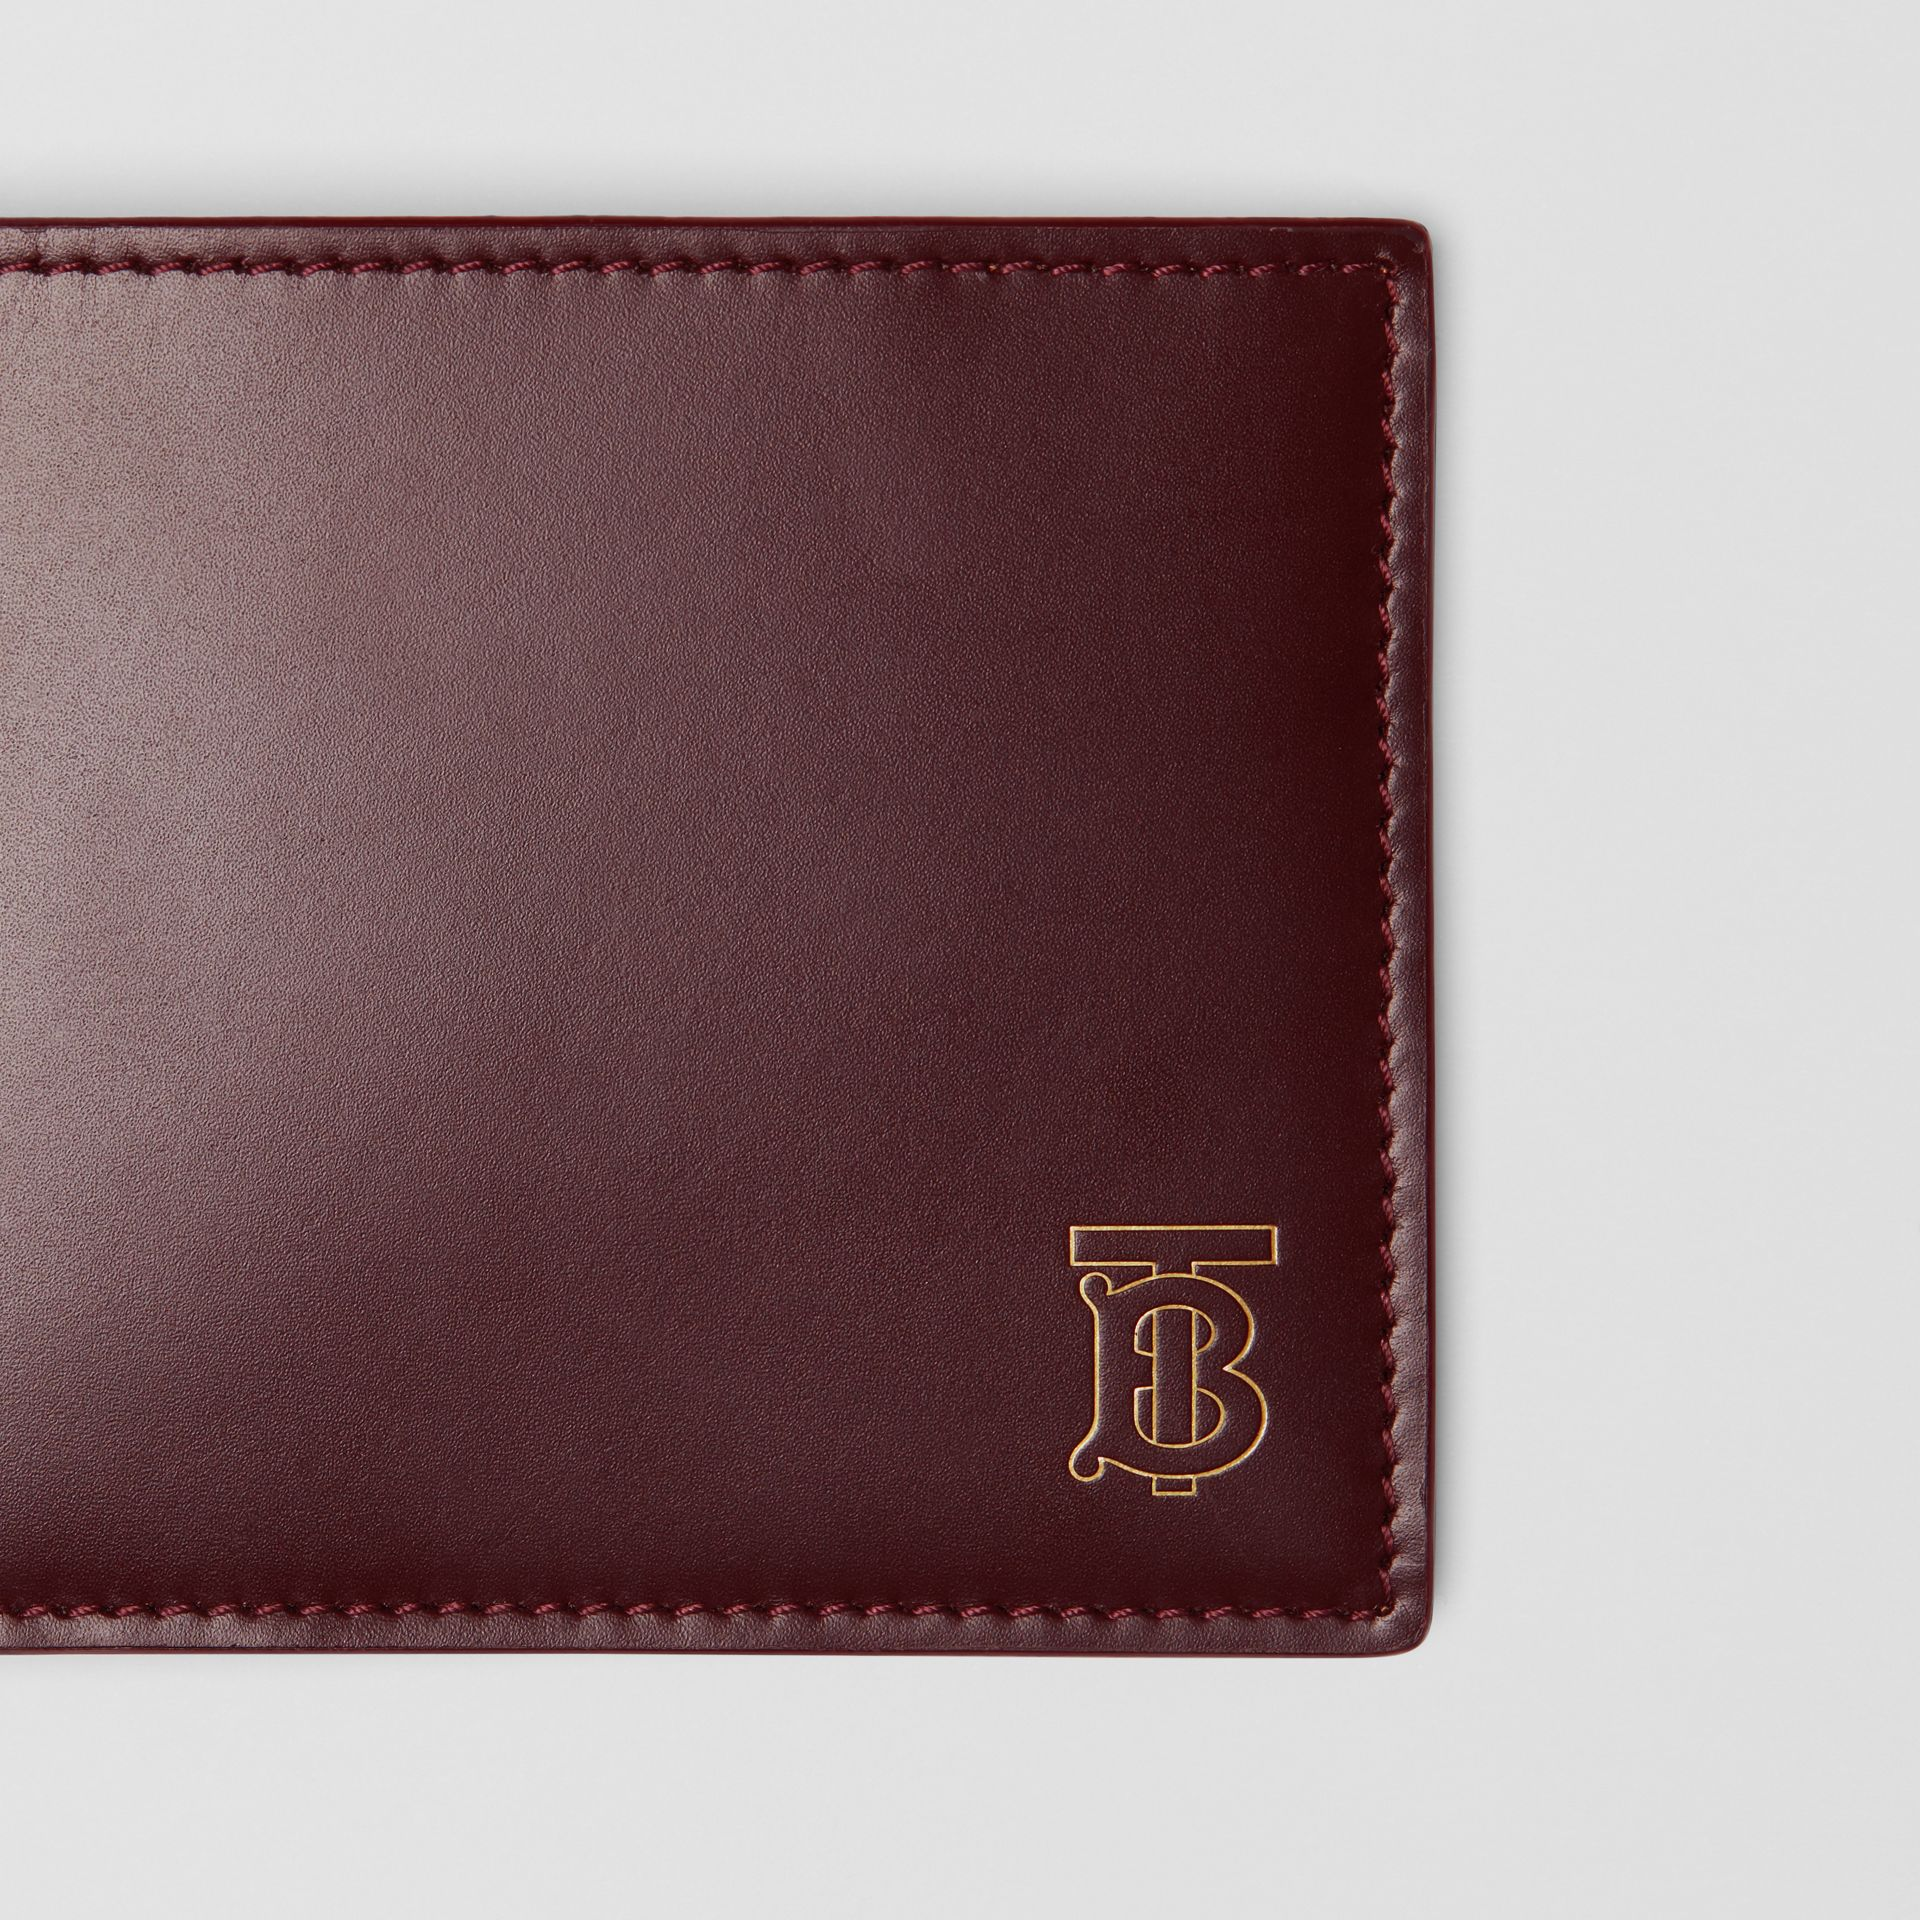 Monogram Motif Leather International Bifold Wallet in Oxblood - Men | Burberry Australia - gallery image 1